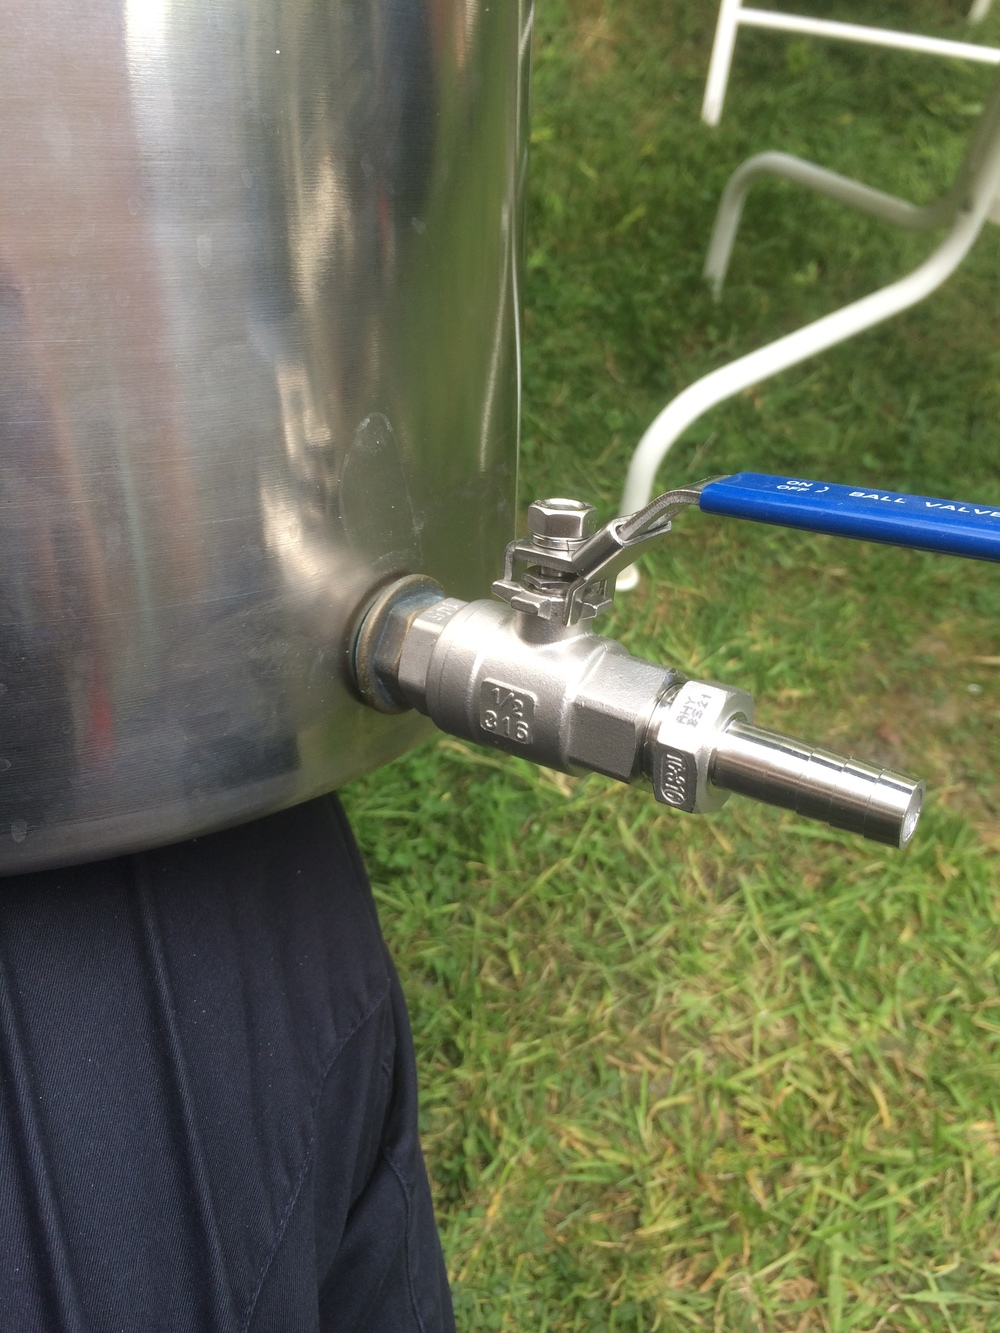 The fitted ball valve